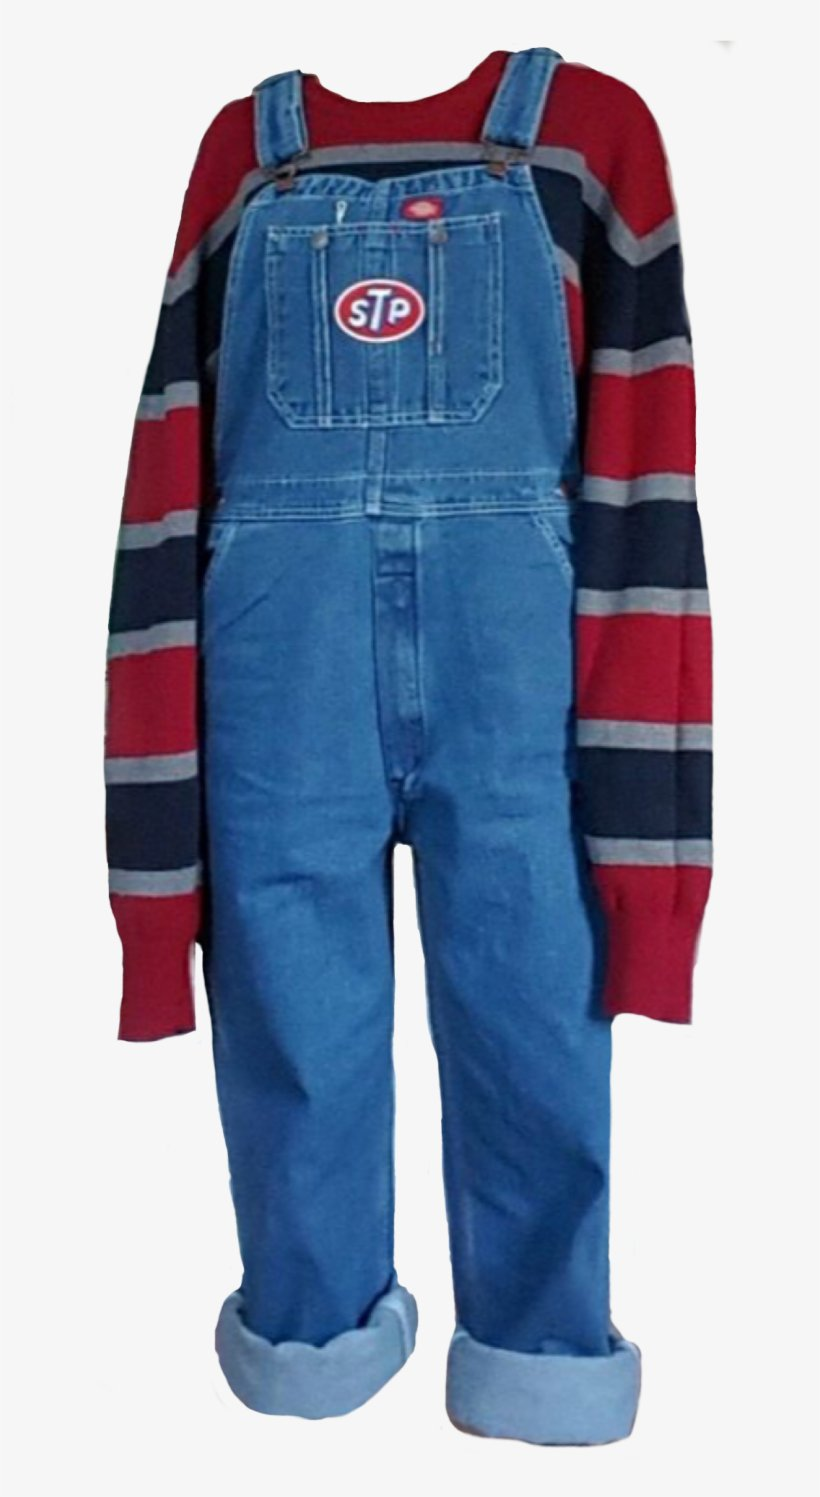 Red Blue Black Outfit Overalls Polyvore Moodboard Filler - Aesthetic Blue Clothes Png Transparent PNG - 1107x2048 - Free Download on NicePNG